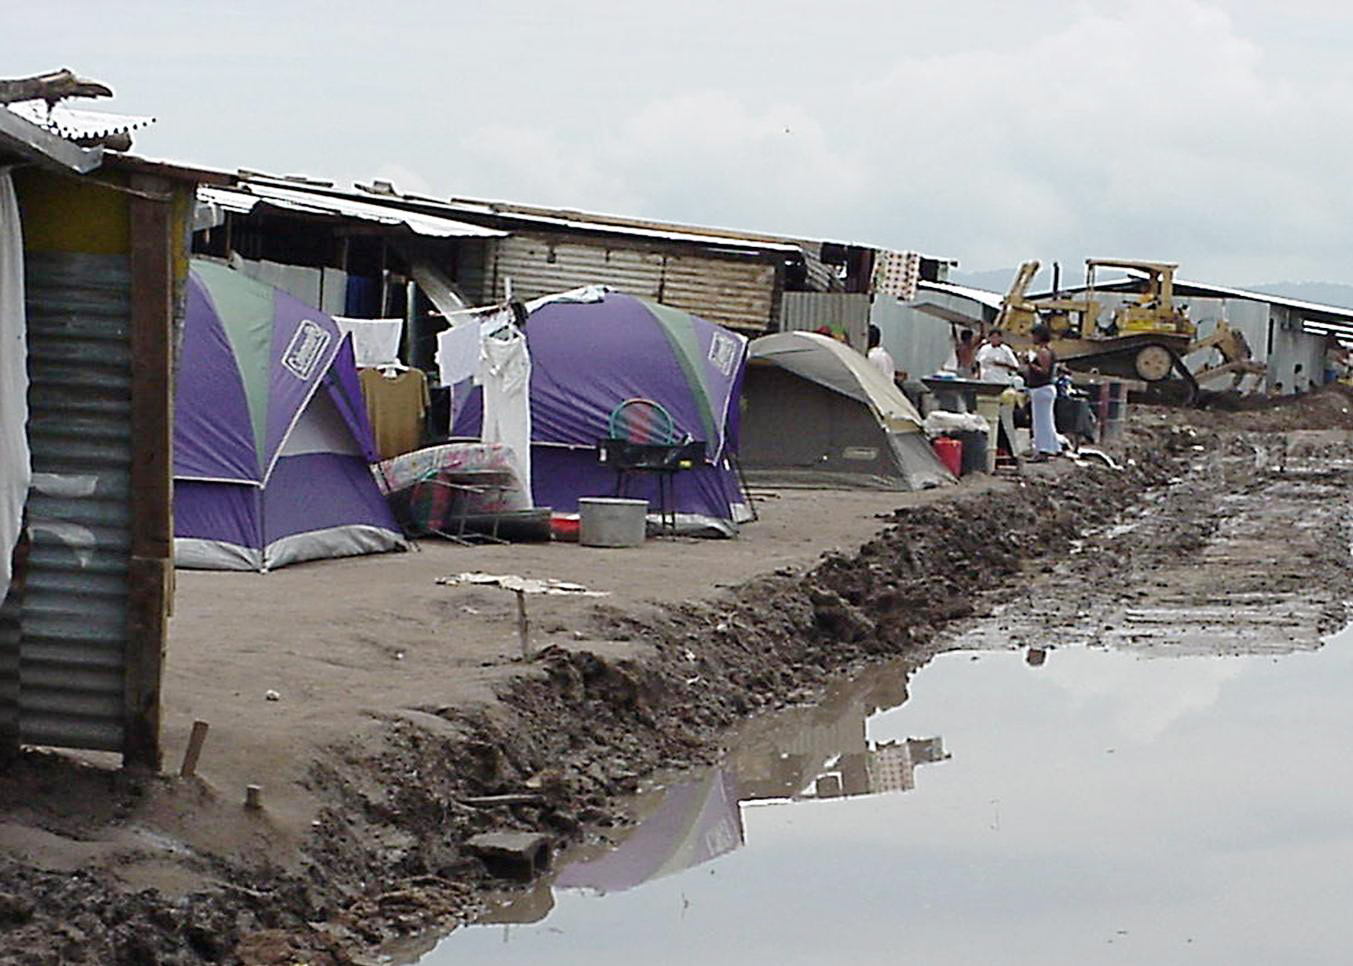 The tent city that people lived in before the new community was built.